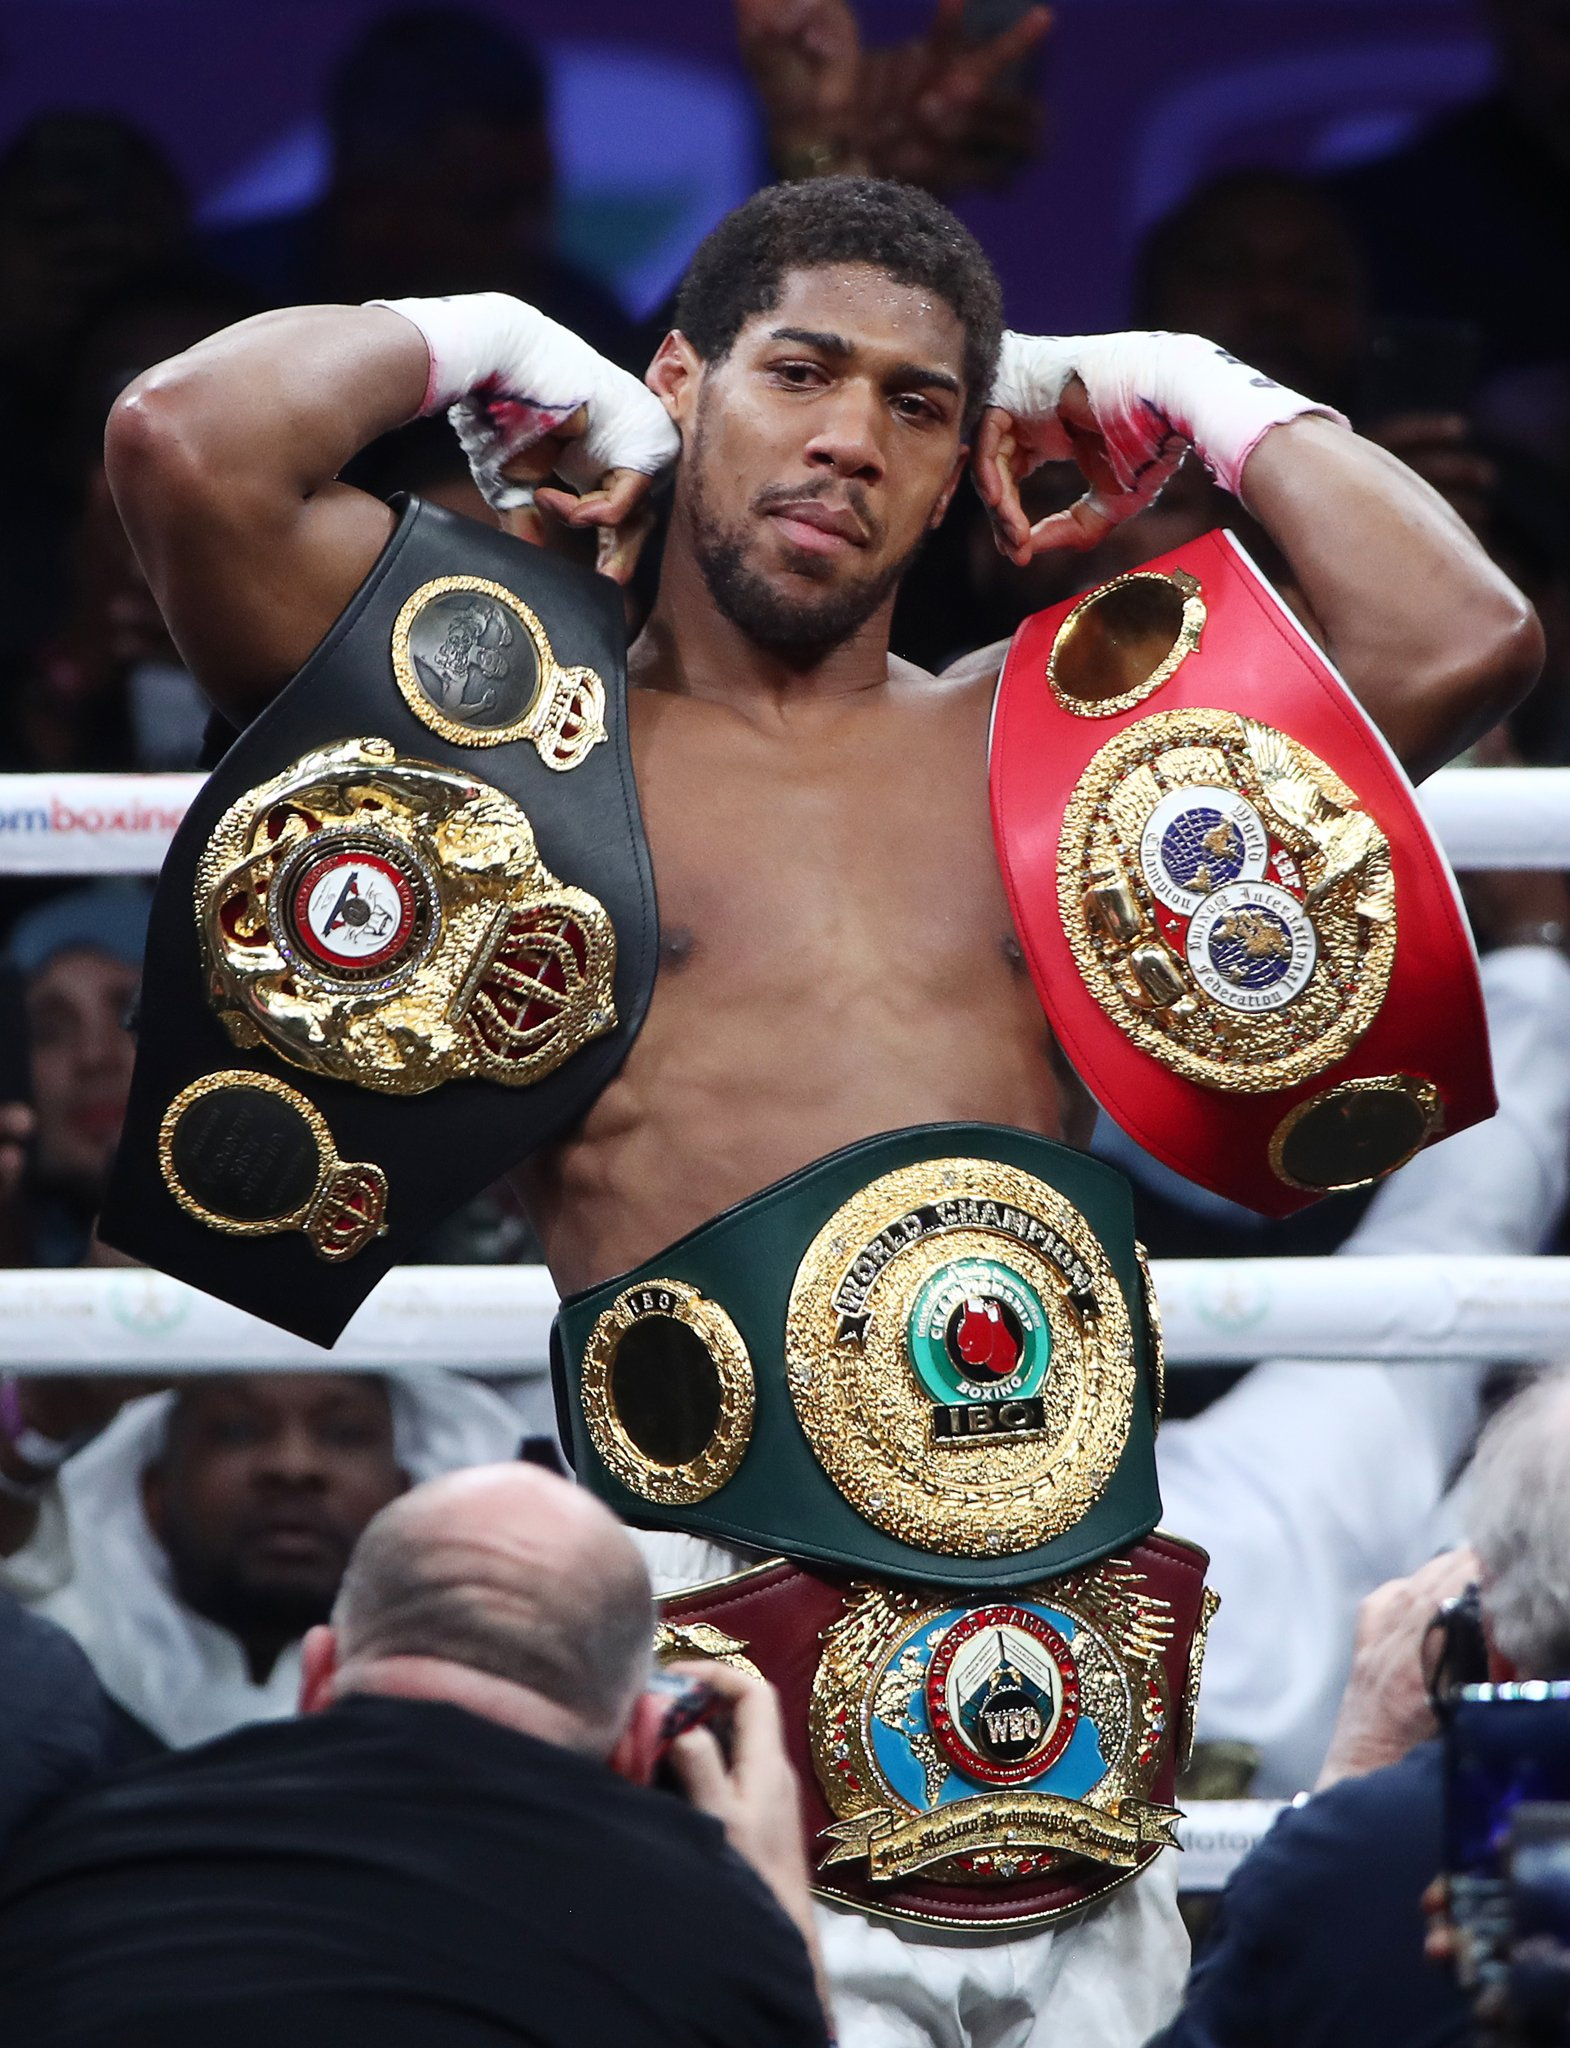 Joshua Pockets £46m For Beating Ruiz In Rematch